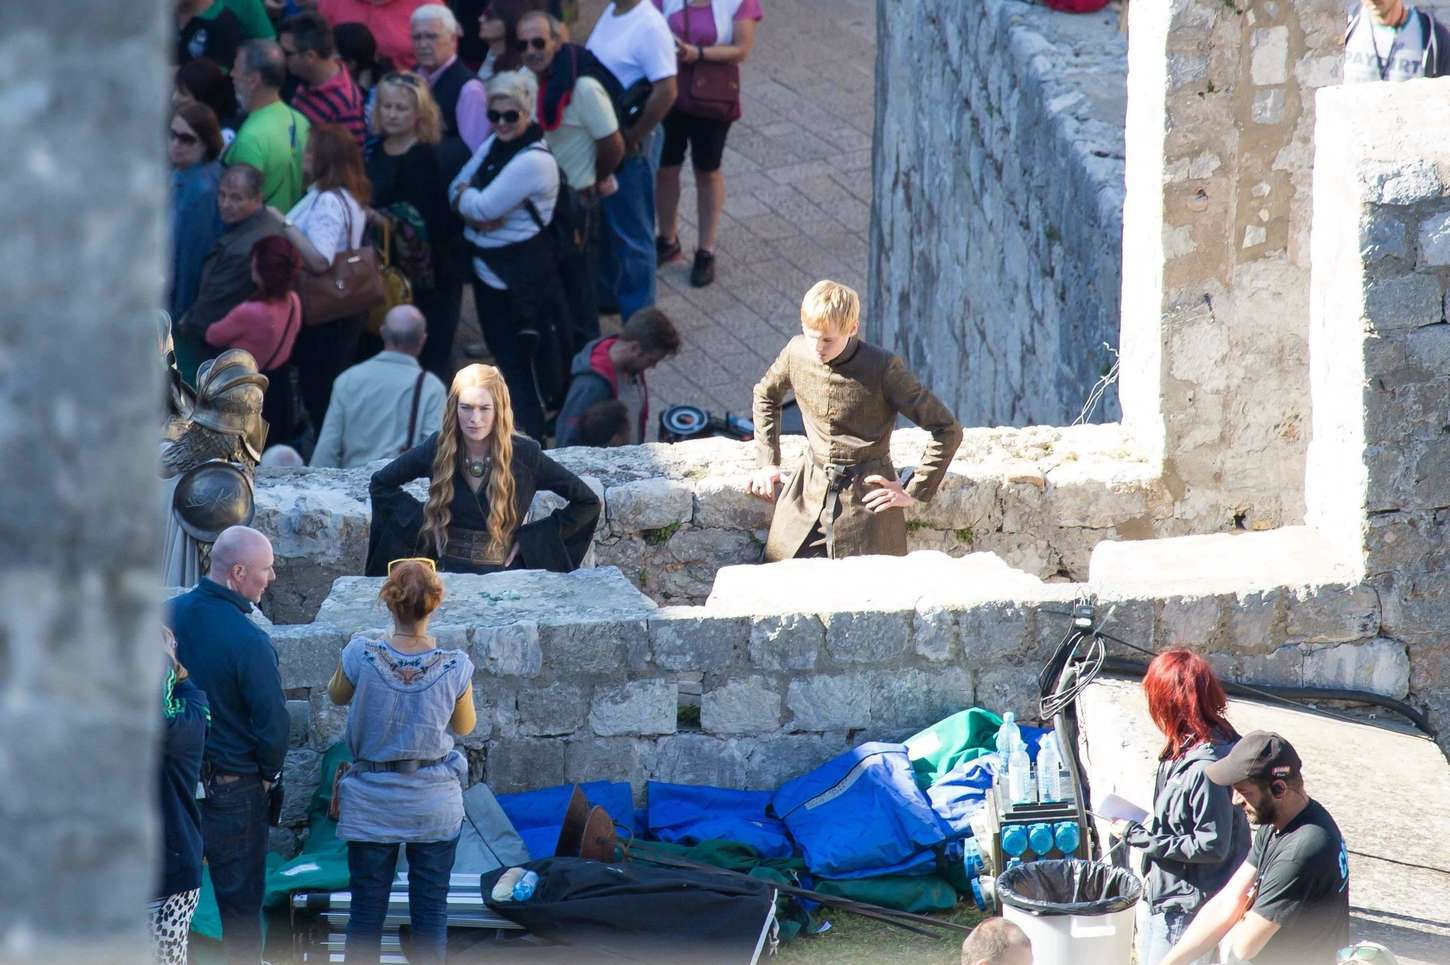 Lena Headey on the set of Game of Thrones in Dubrovnik